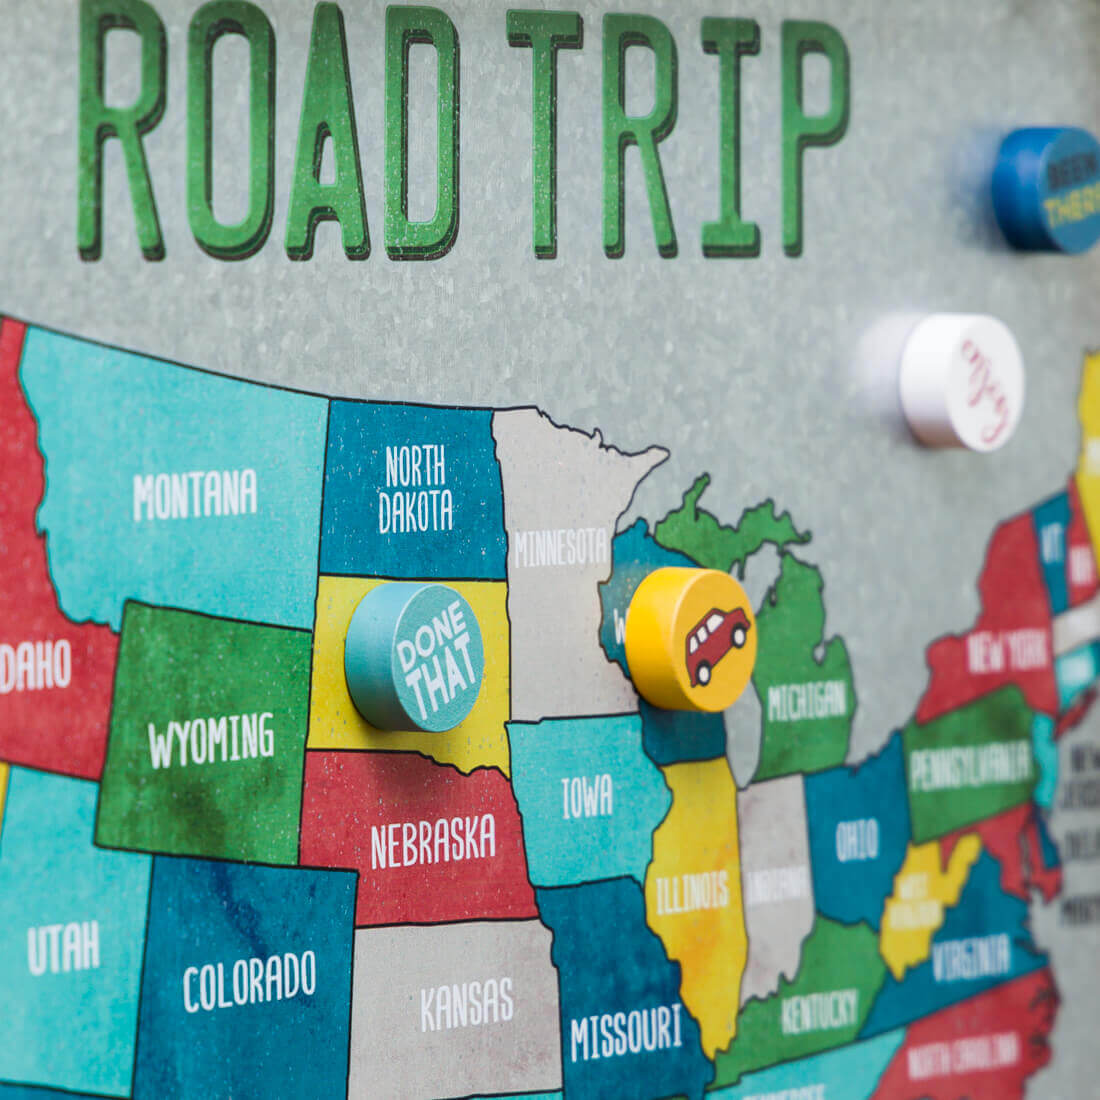 Road Trip Aluminum Map of the United States of America - magnets included